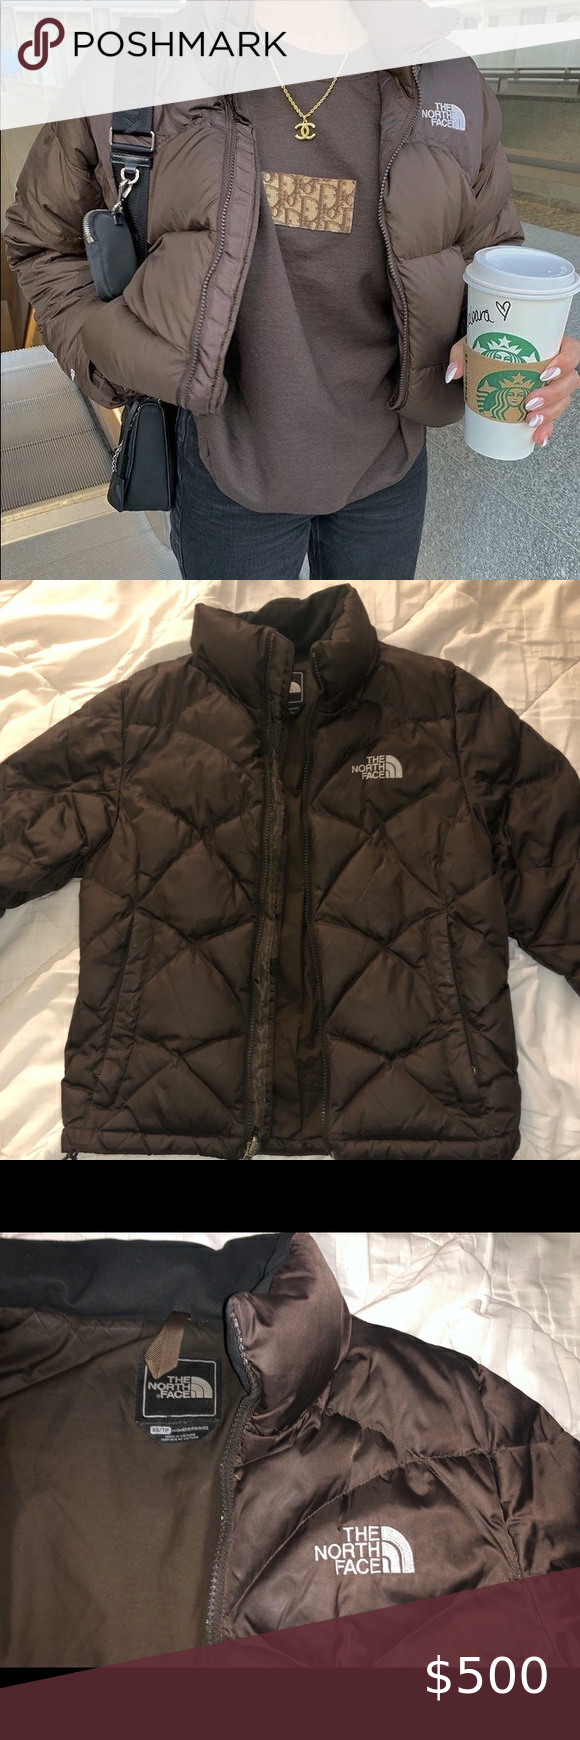 Brown North Face Puffer Jacket Brown North Face Puffer Jacket Kendall Jenner Do Not North Face Puffer Jacket Brown North Face Puffer Jacket North Face Puffer [ 1740 x 580 Pixel ]